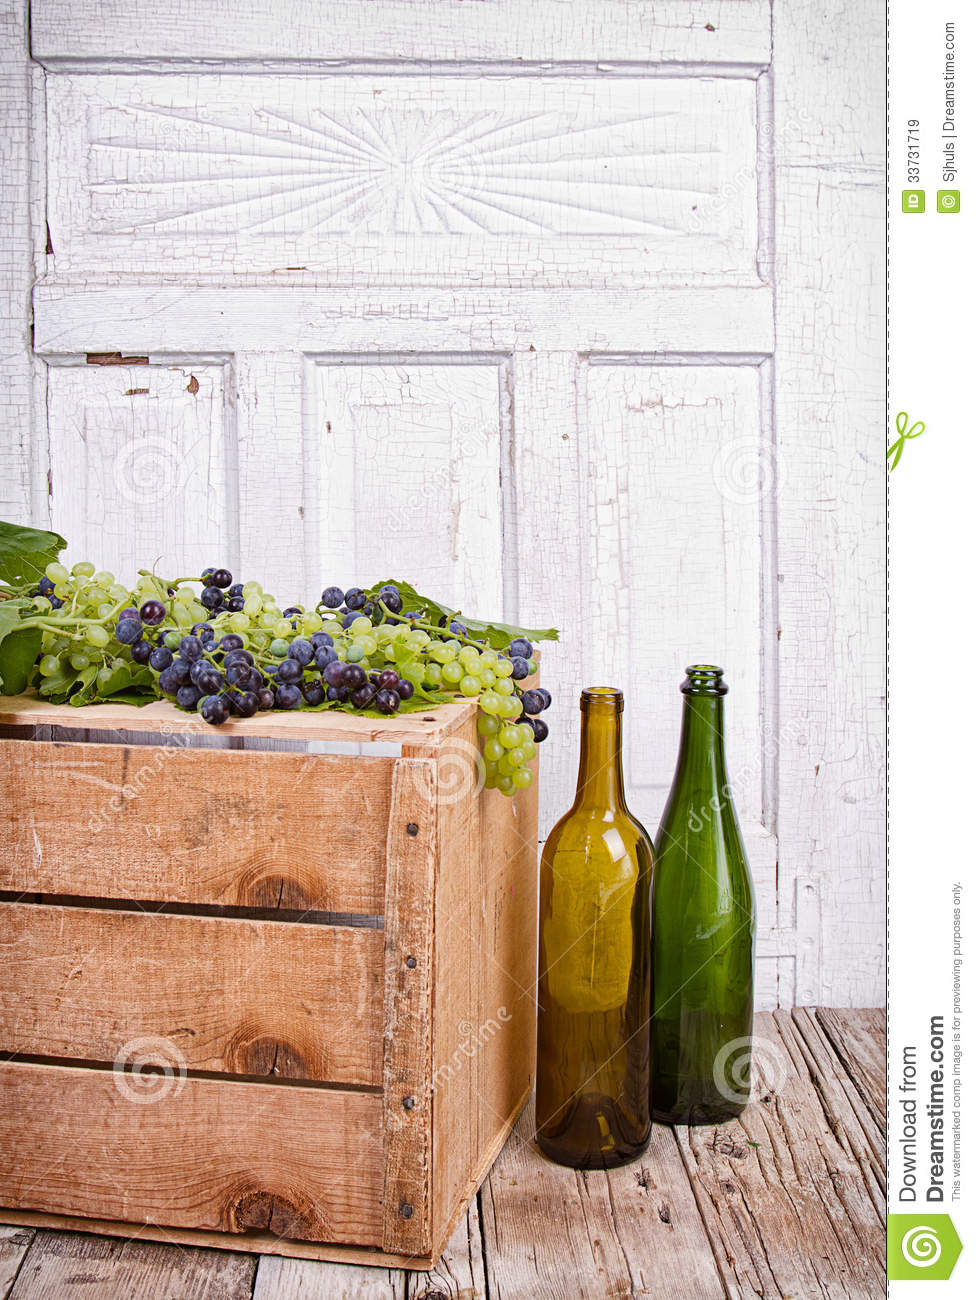 Grapes on wooden crate royalty free stock images image for Empty wine crates